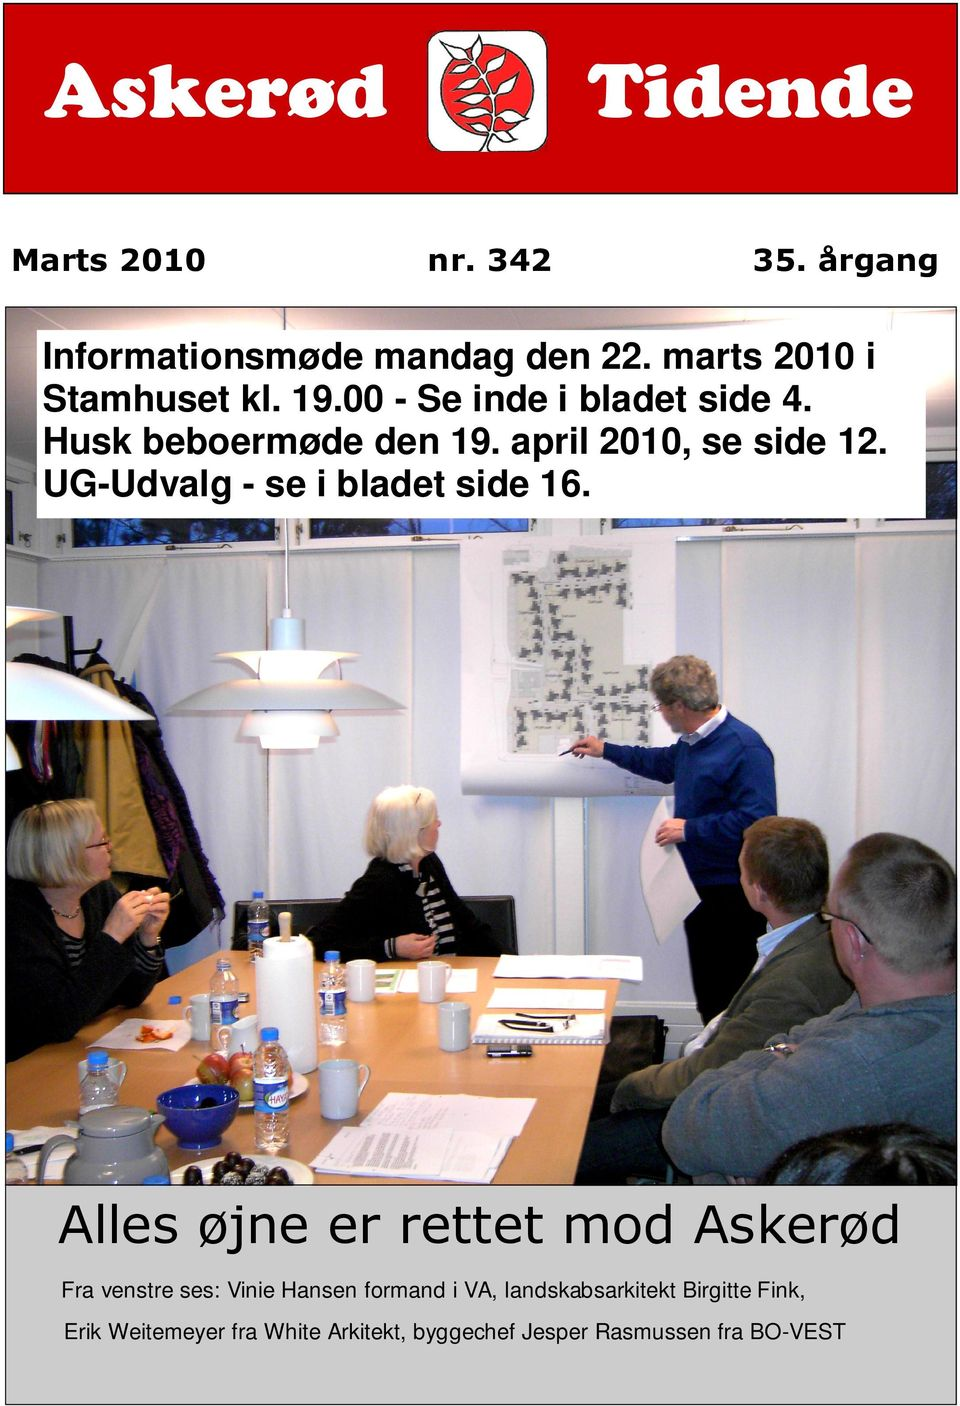 april 2010, se side 12. UG-Udvalg - se i bladet side 16.